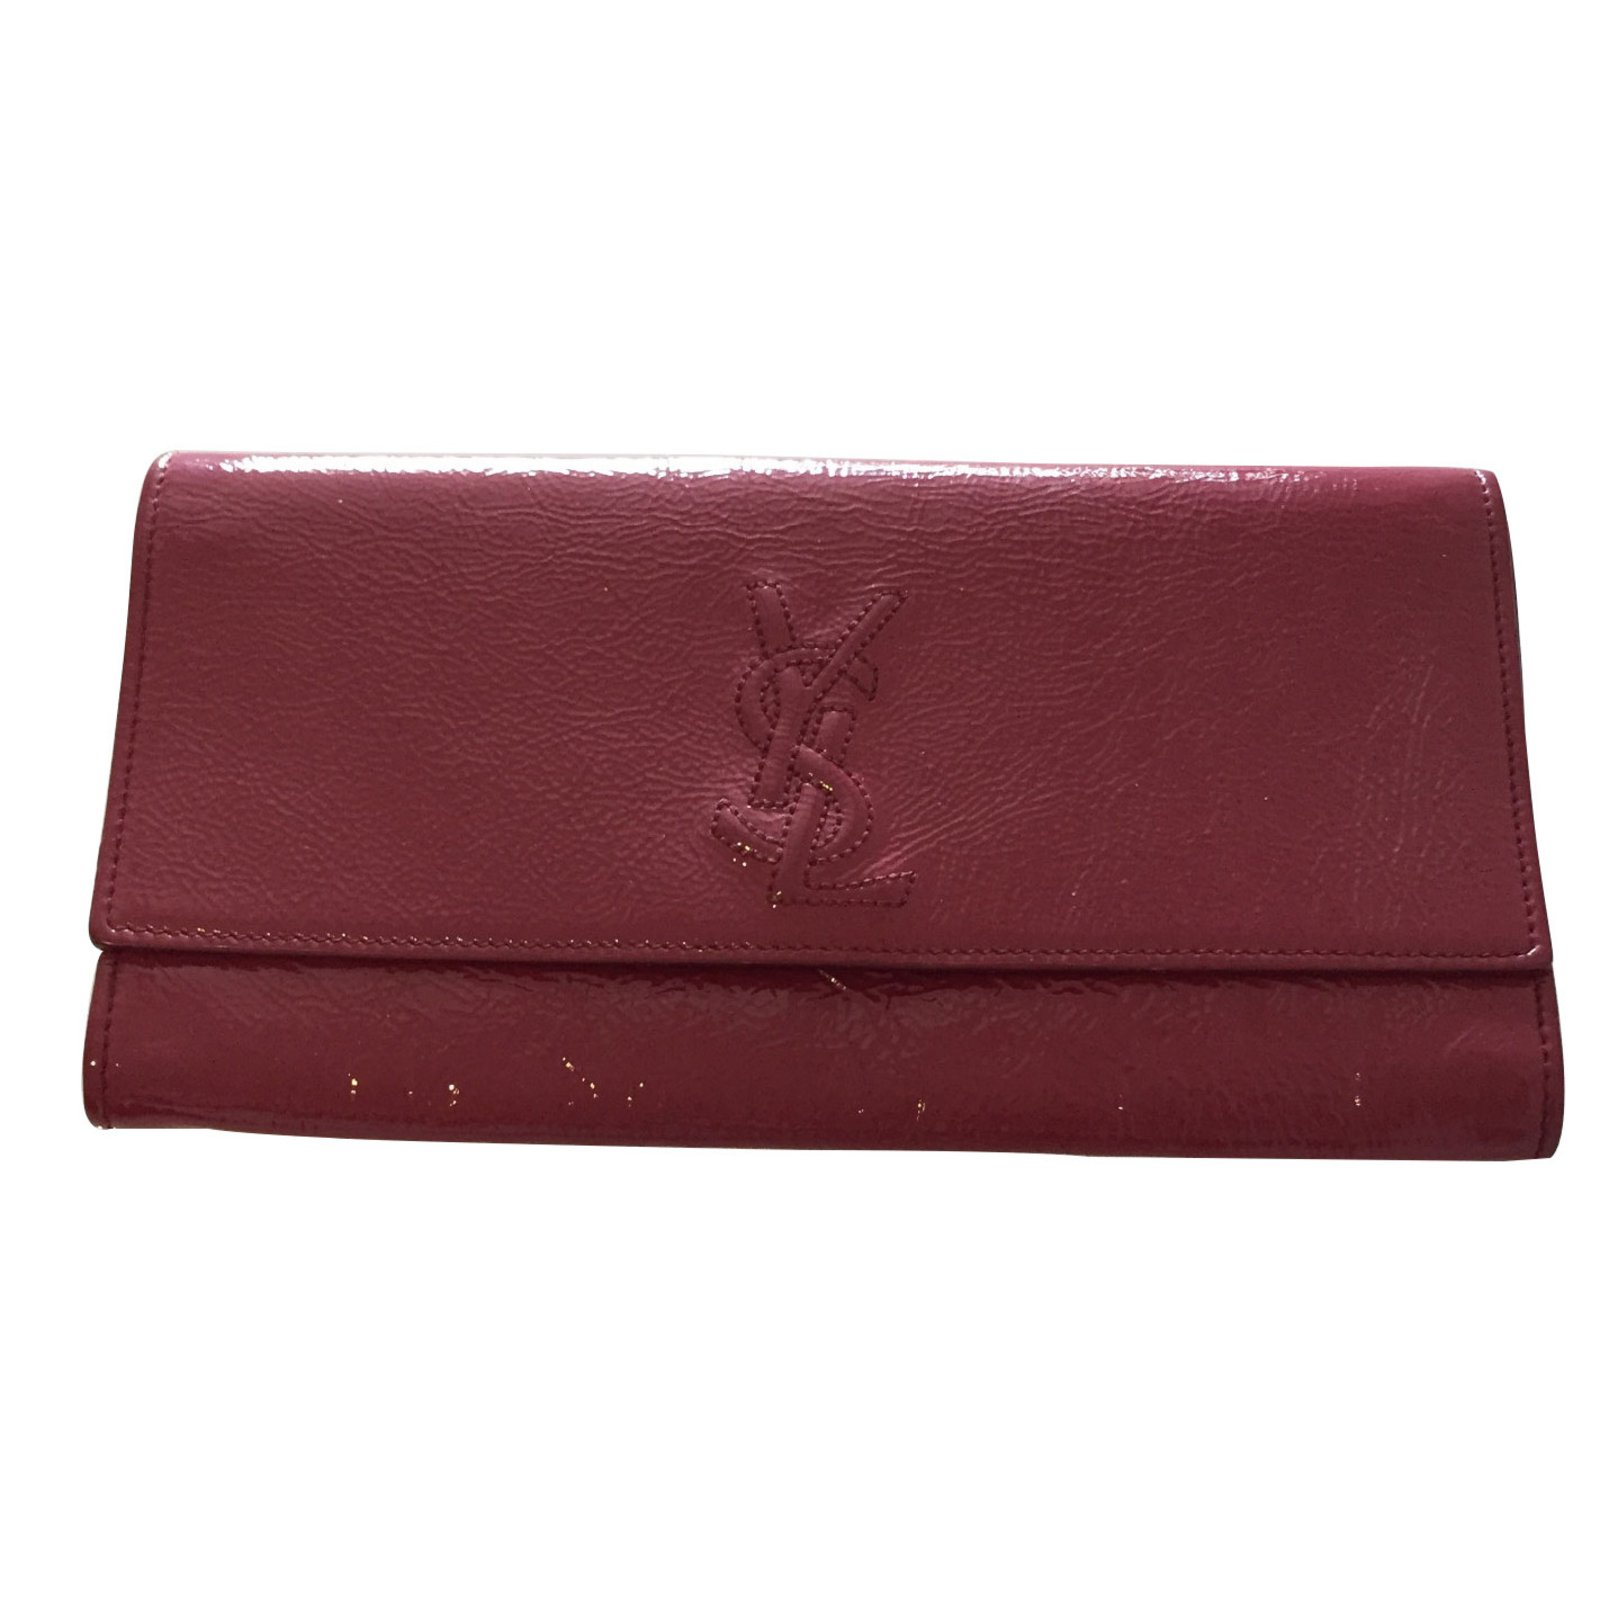 college purses - Clutch bags Yves Saint Laurent Clutch bags Patent leather Pink ref ...